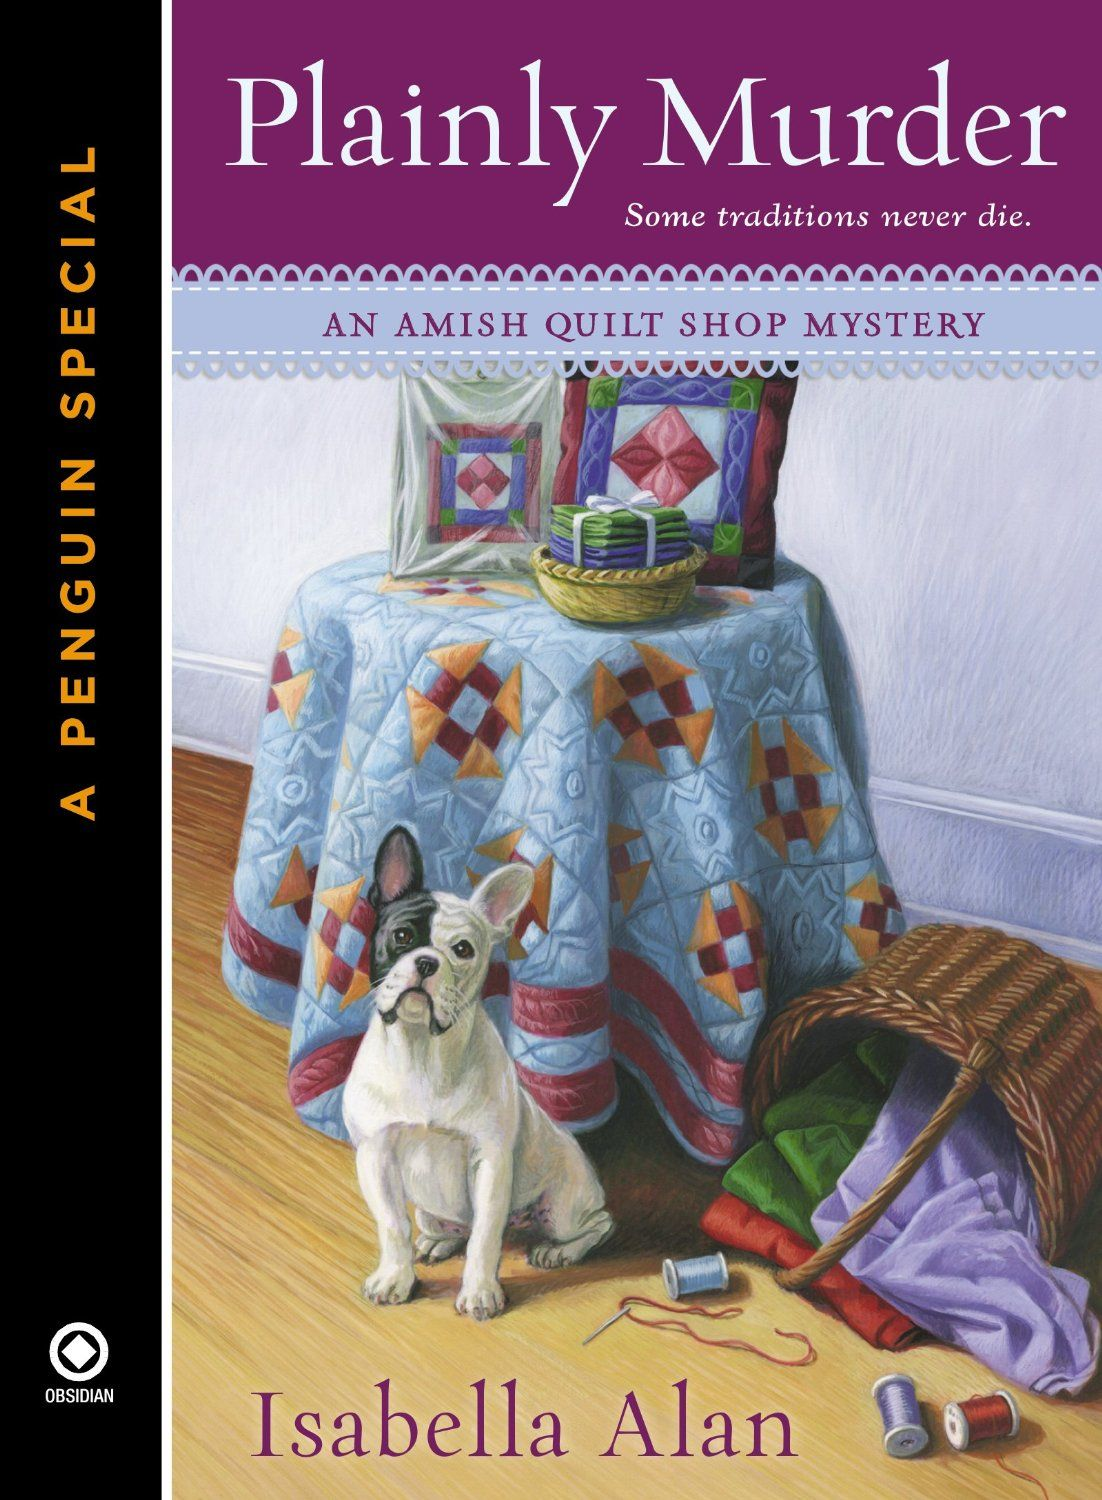 Plainly Murder (An Amish Quilt Shop Mystery) by Isabella Alan. Angela Braddock has come to Rolling Brook to lend a hand at her Aunt Eleanor's traditional Amish quilt shop. But when Eleanor's quilting circle mourns the loss of their oldest member, Evelyn, they make a startling discovery about a tragic event in Evelyn's past.